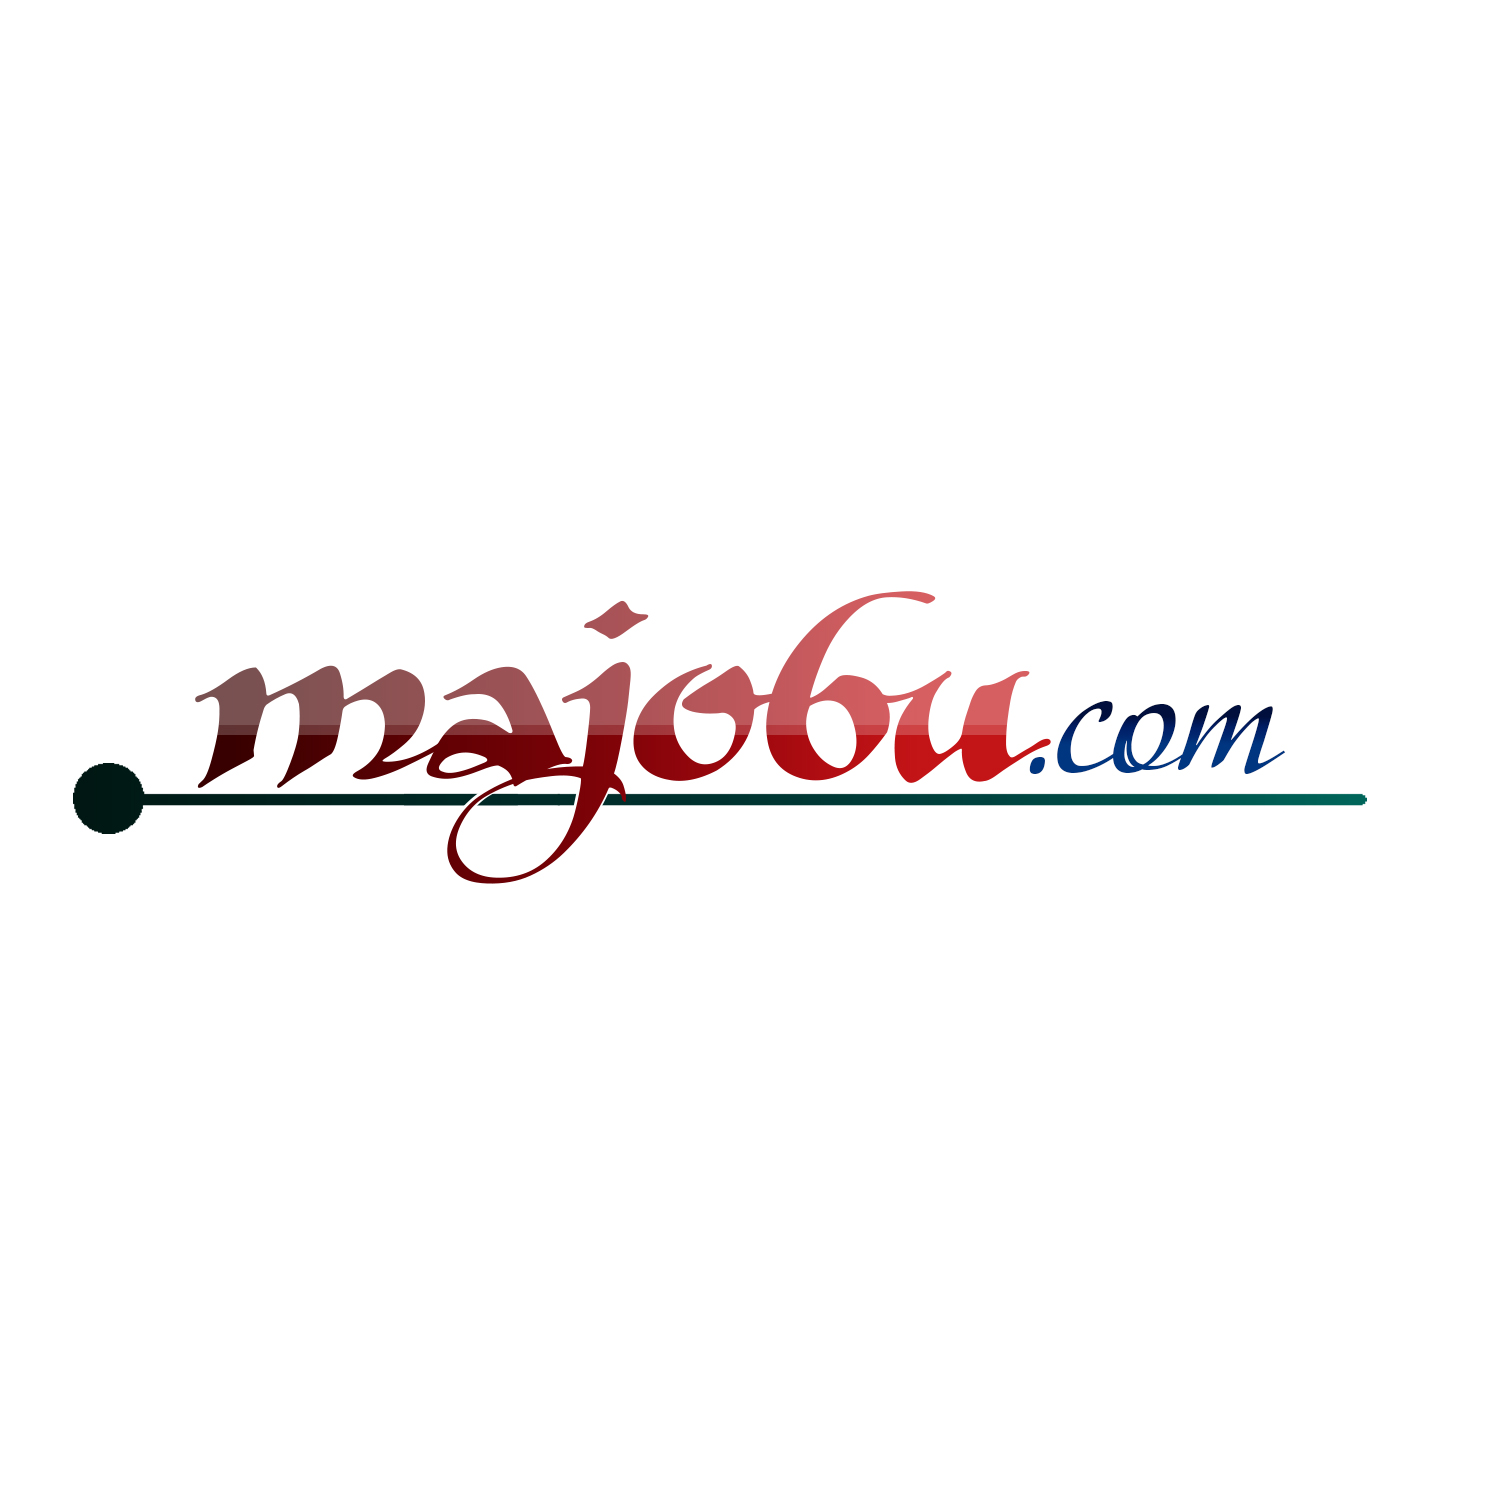 Logo Design by Kivi Marc Sarmiento - Entry No. 15 in the Logo Design Contest Inspiring Logo Design for Majobu.